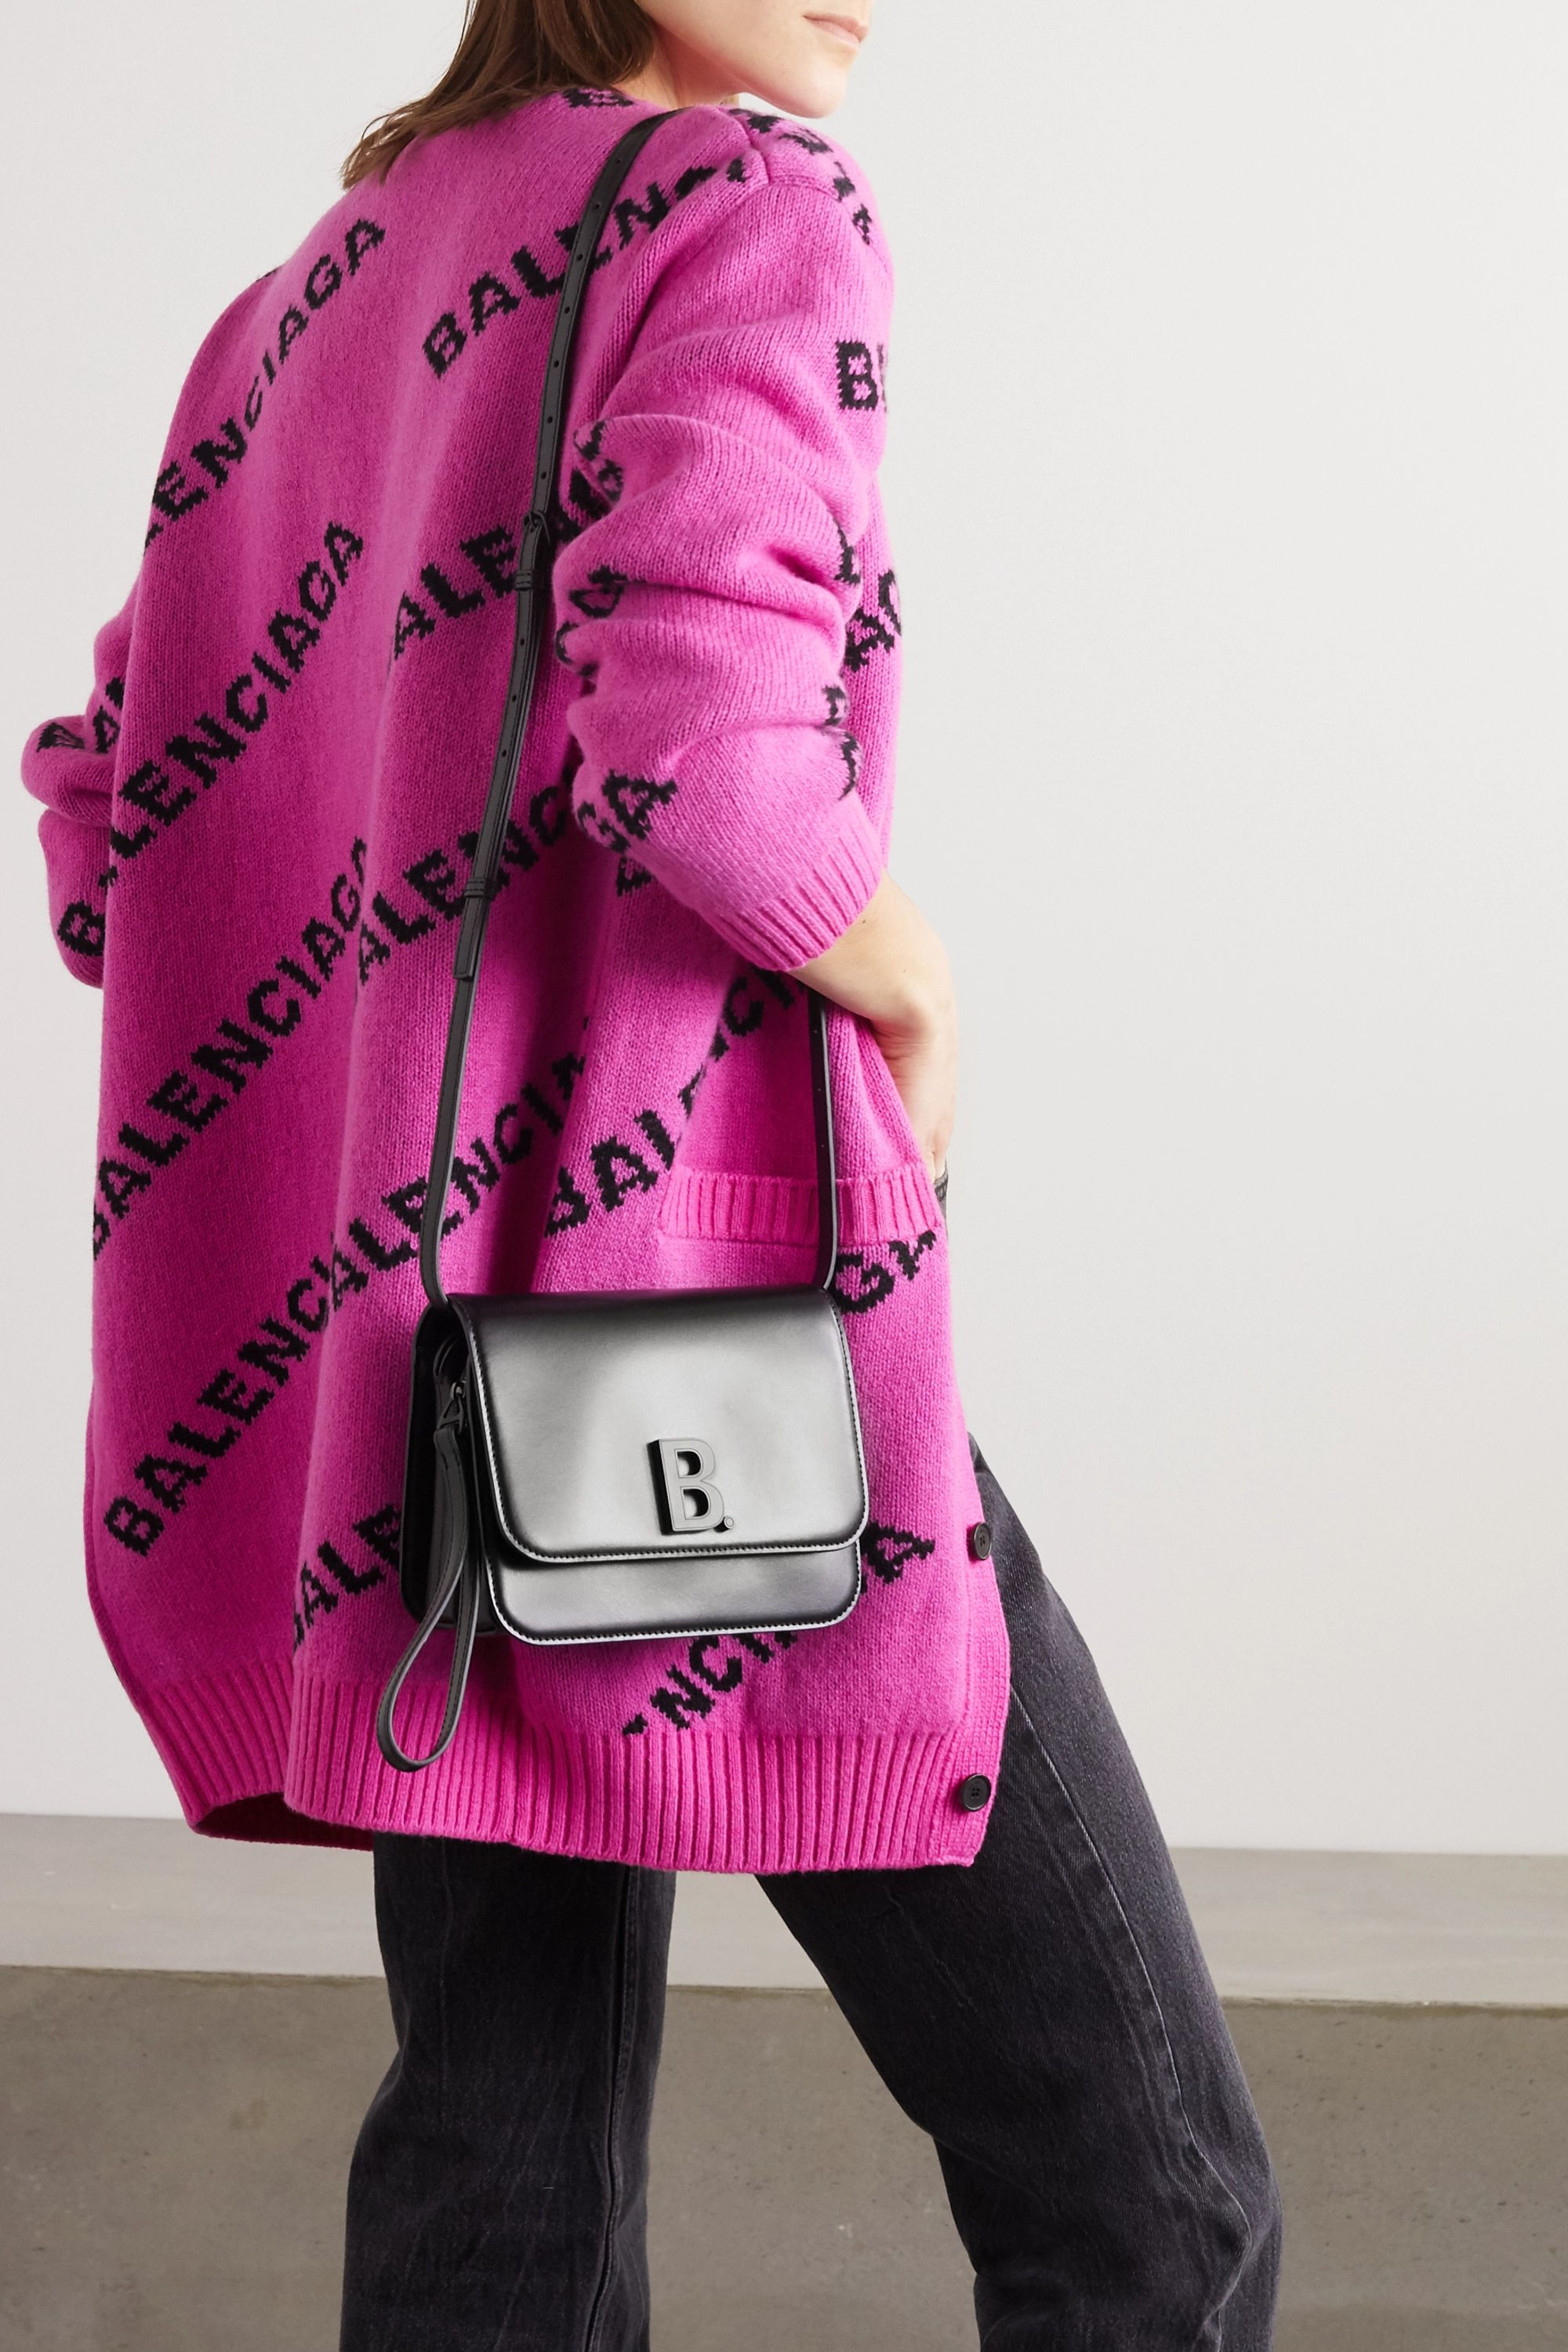 Balenciaga B Dot leather shoulder bag